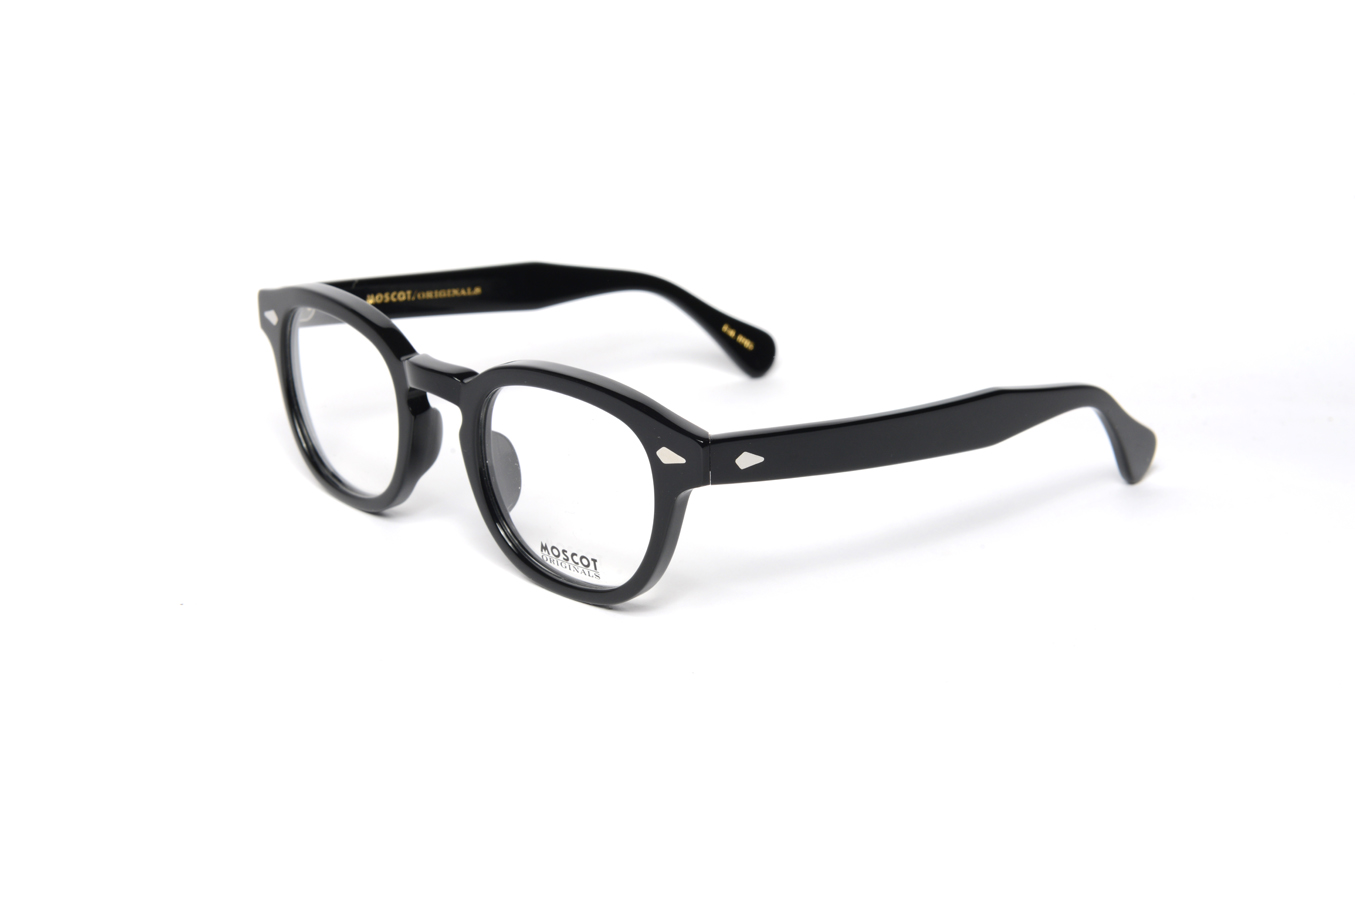 53056e677d Moscot - Lemtosh - Piccadilly Opticians -